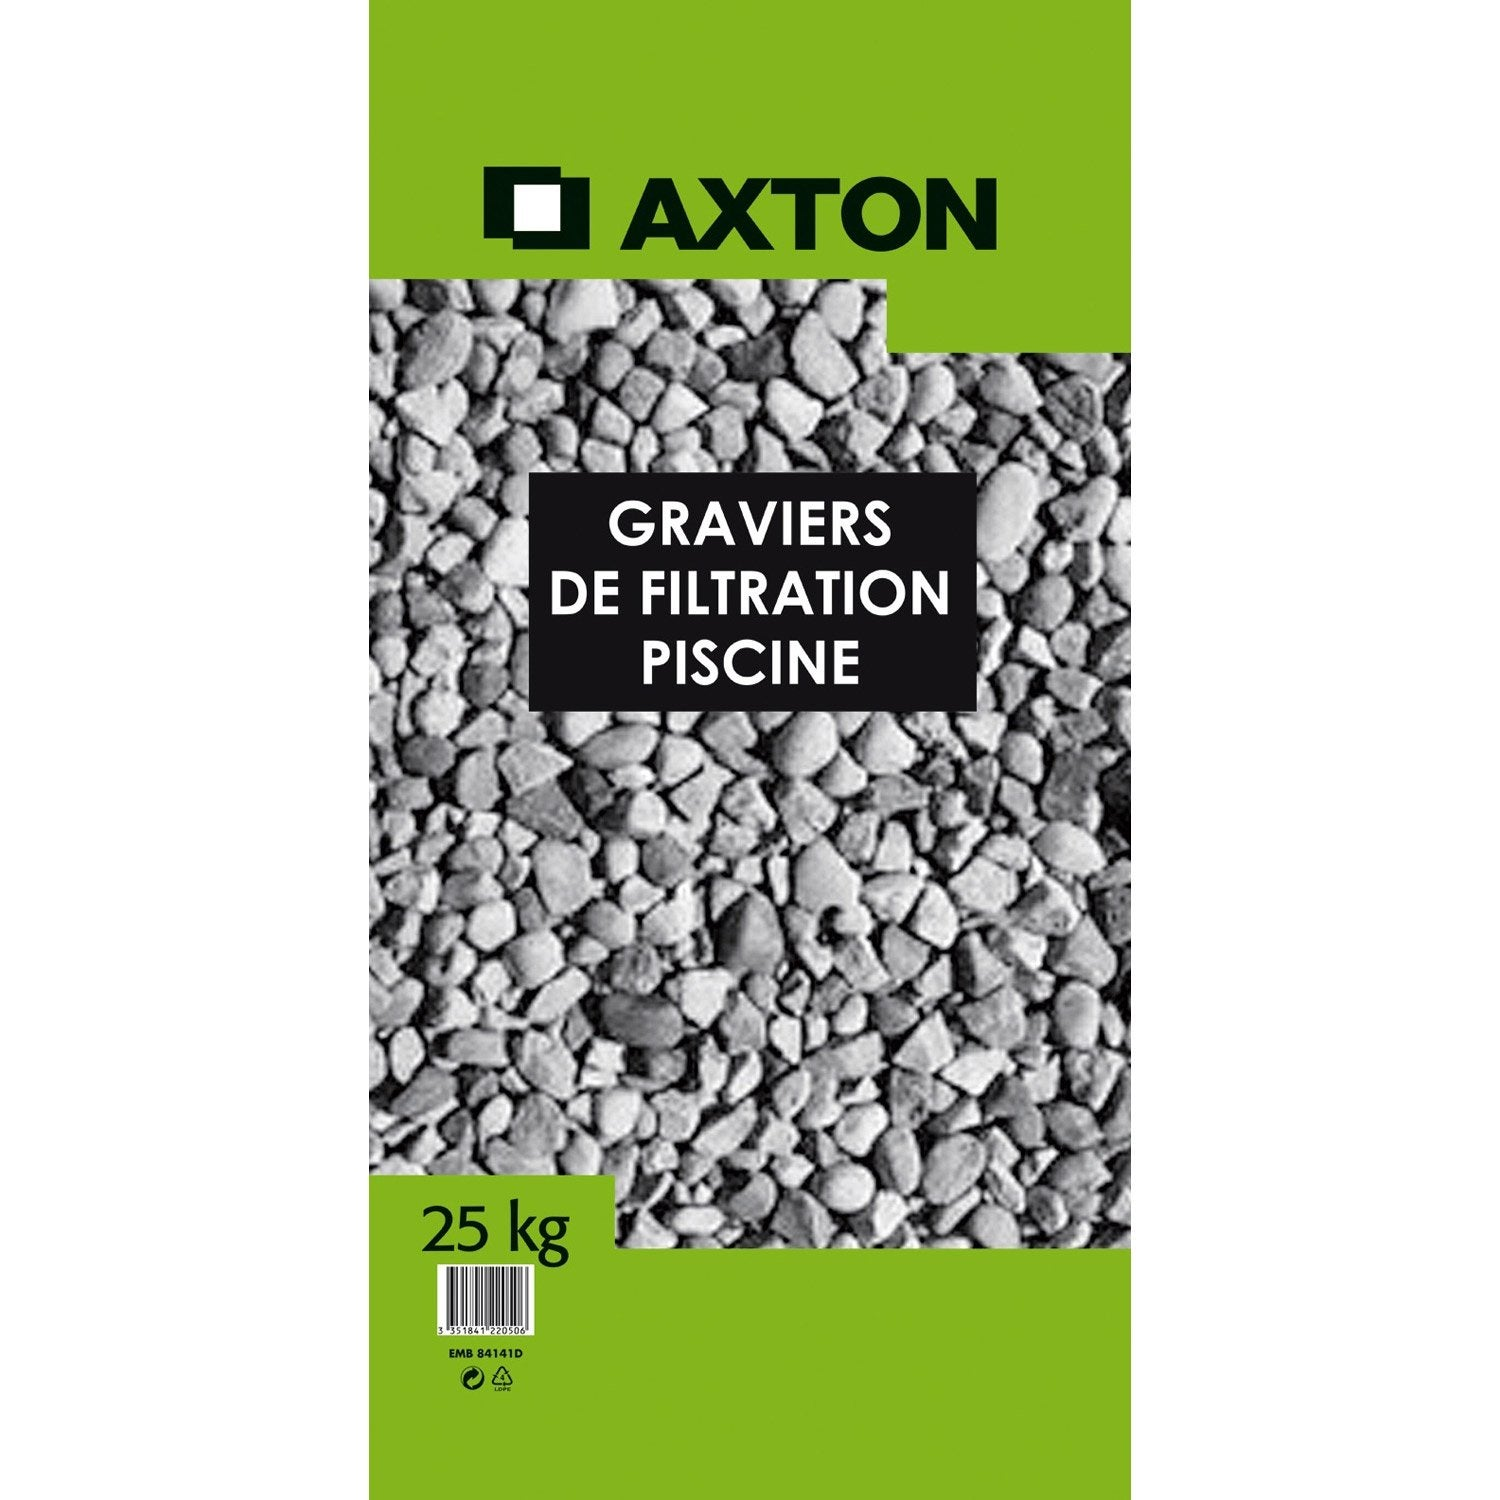 Graviers de filtration axton 25 kg leroy merlin for Sable de filtration pour piscine